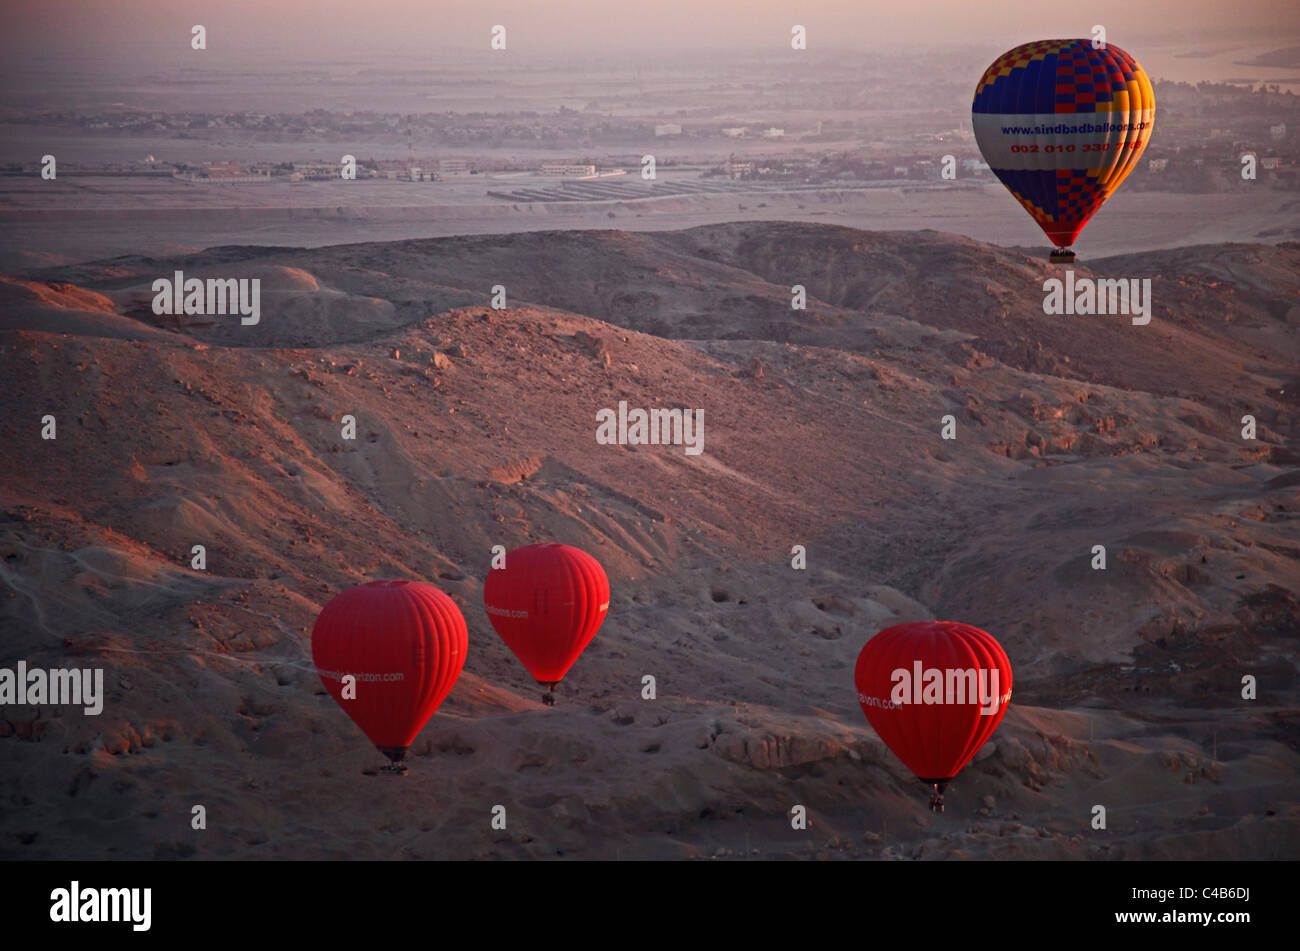 multicoloured hot air balloons, ascend at dawn over the Valley of the Kings and Queens, Al Asasif, Luxor, Egypt - Stock Image